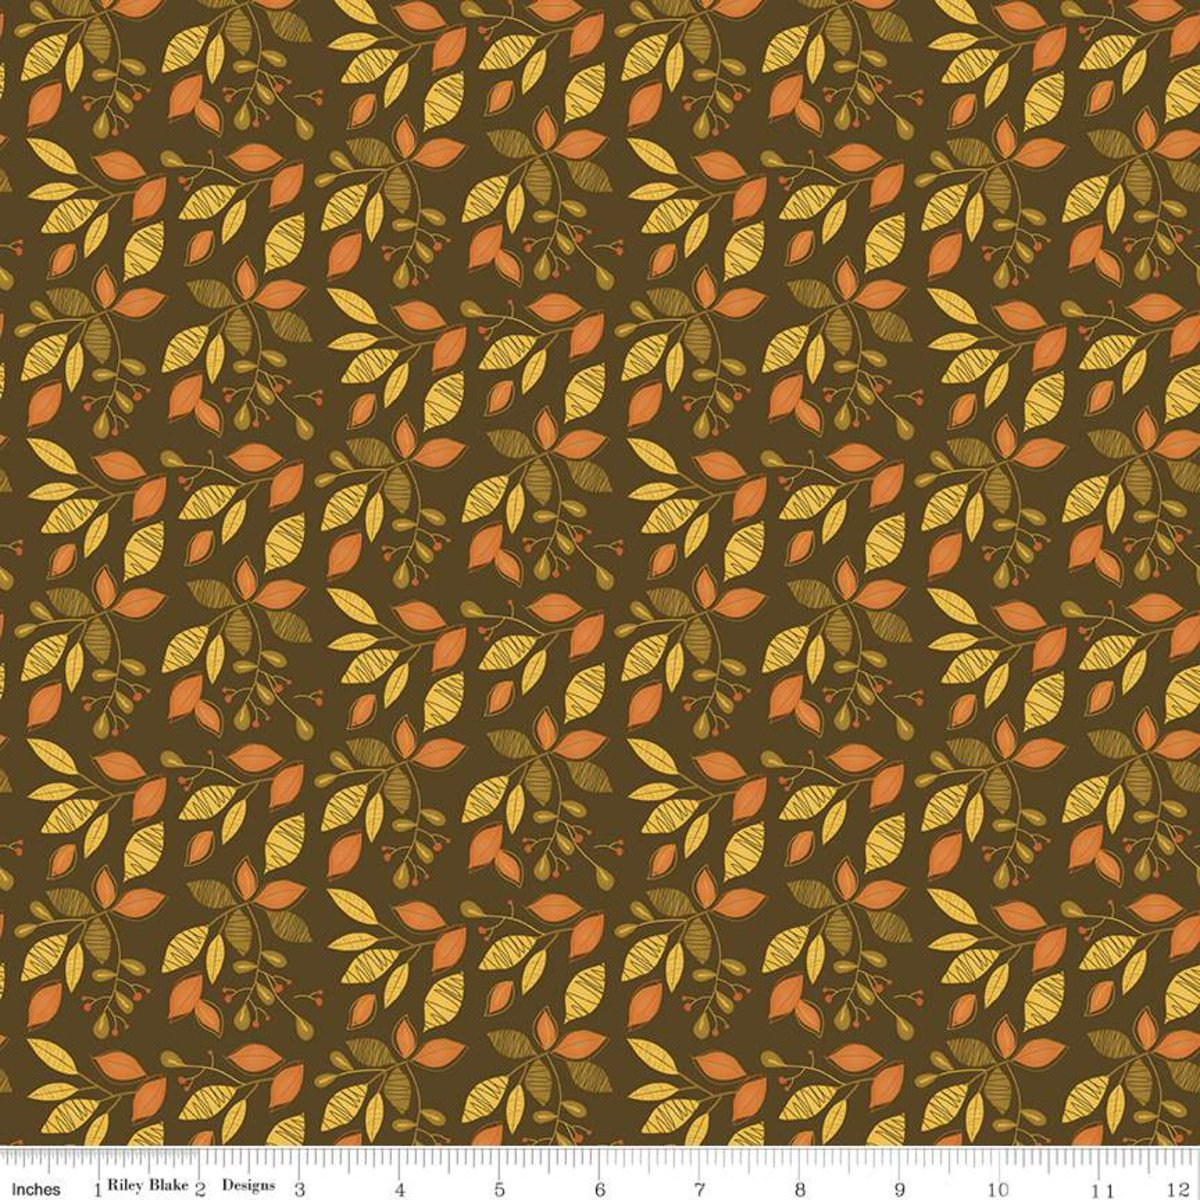 Riley Blake, Adel in Autumn - Leaves Chocolate